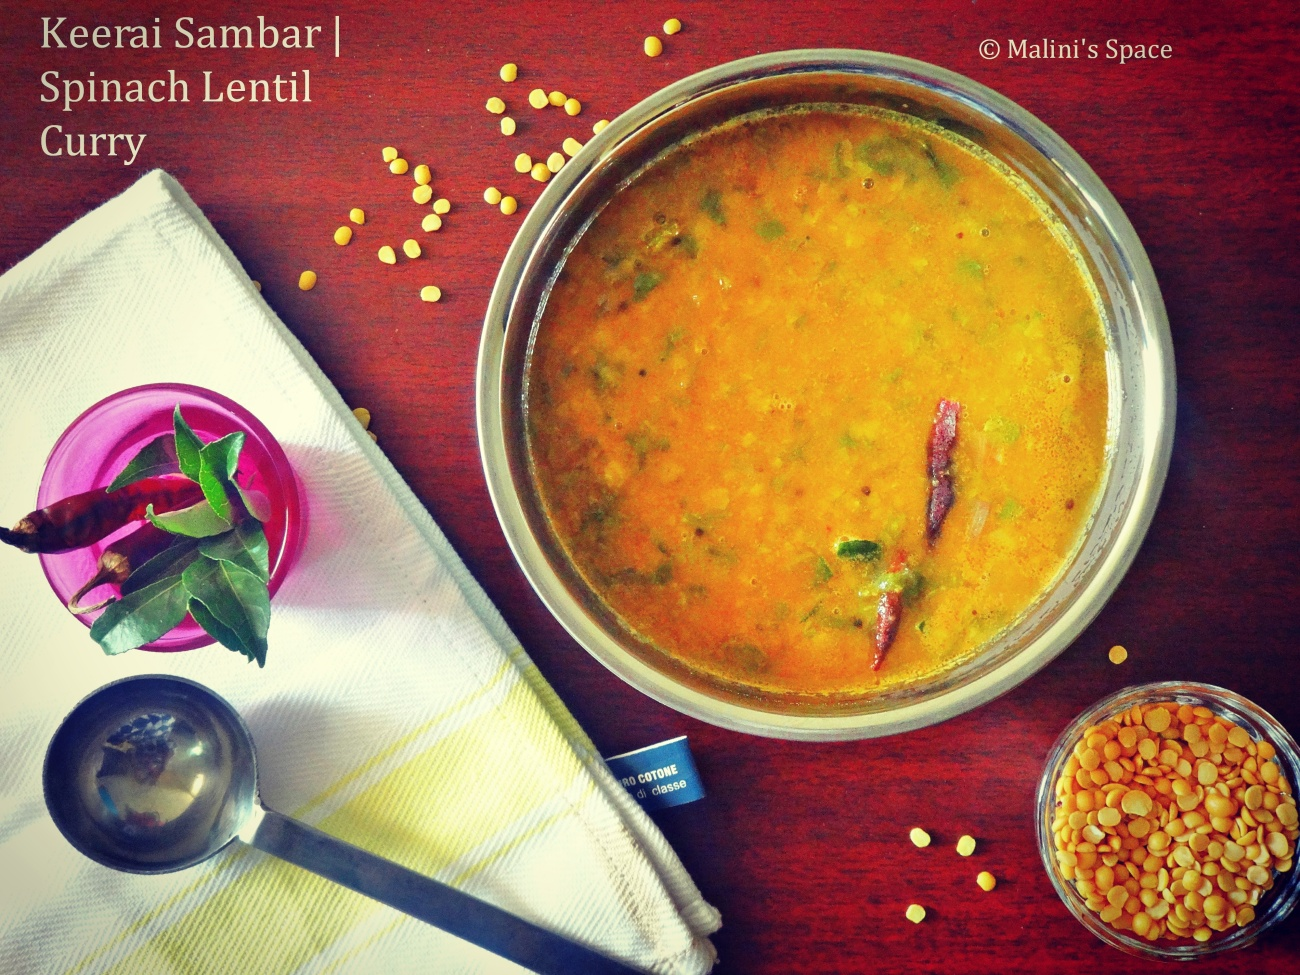 Keerai Sambar | Spinach Lentil Curry